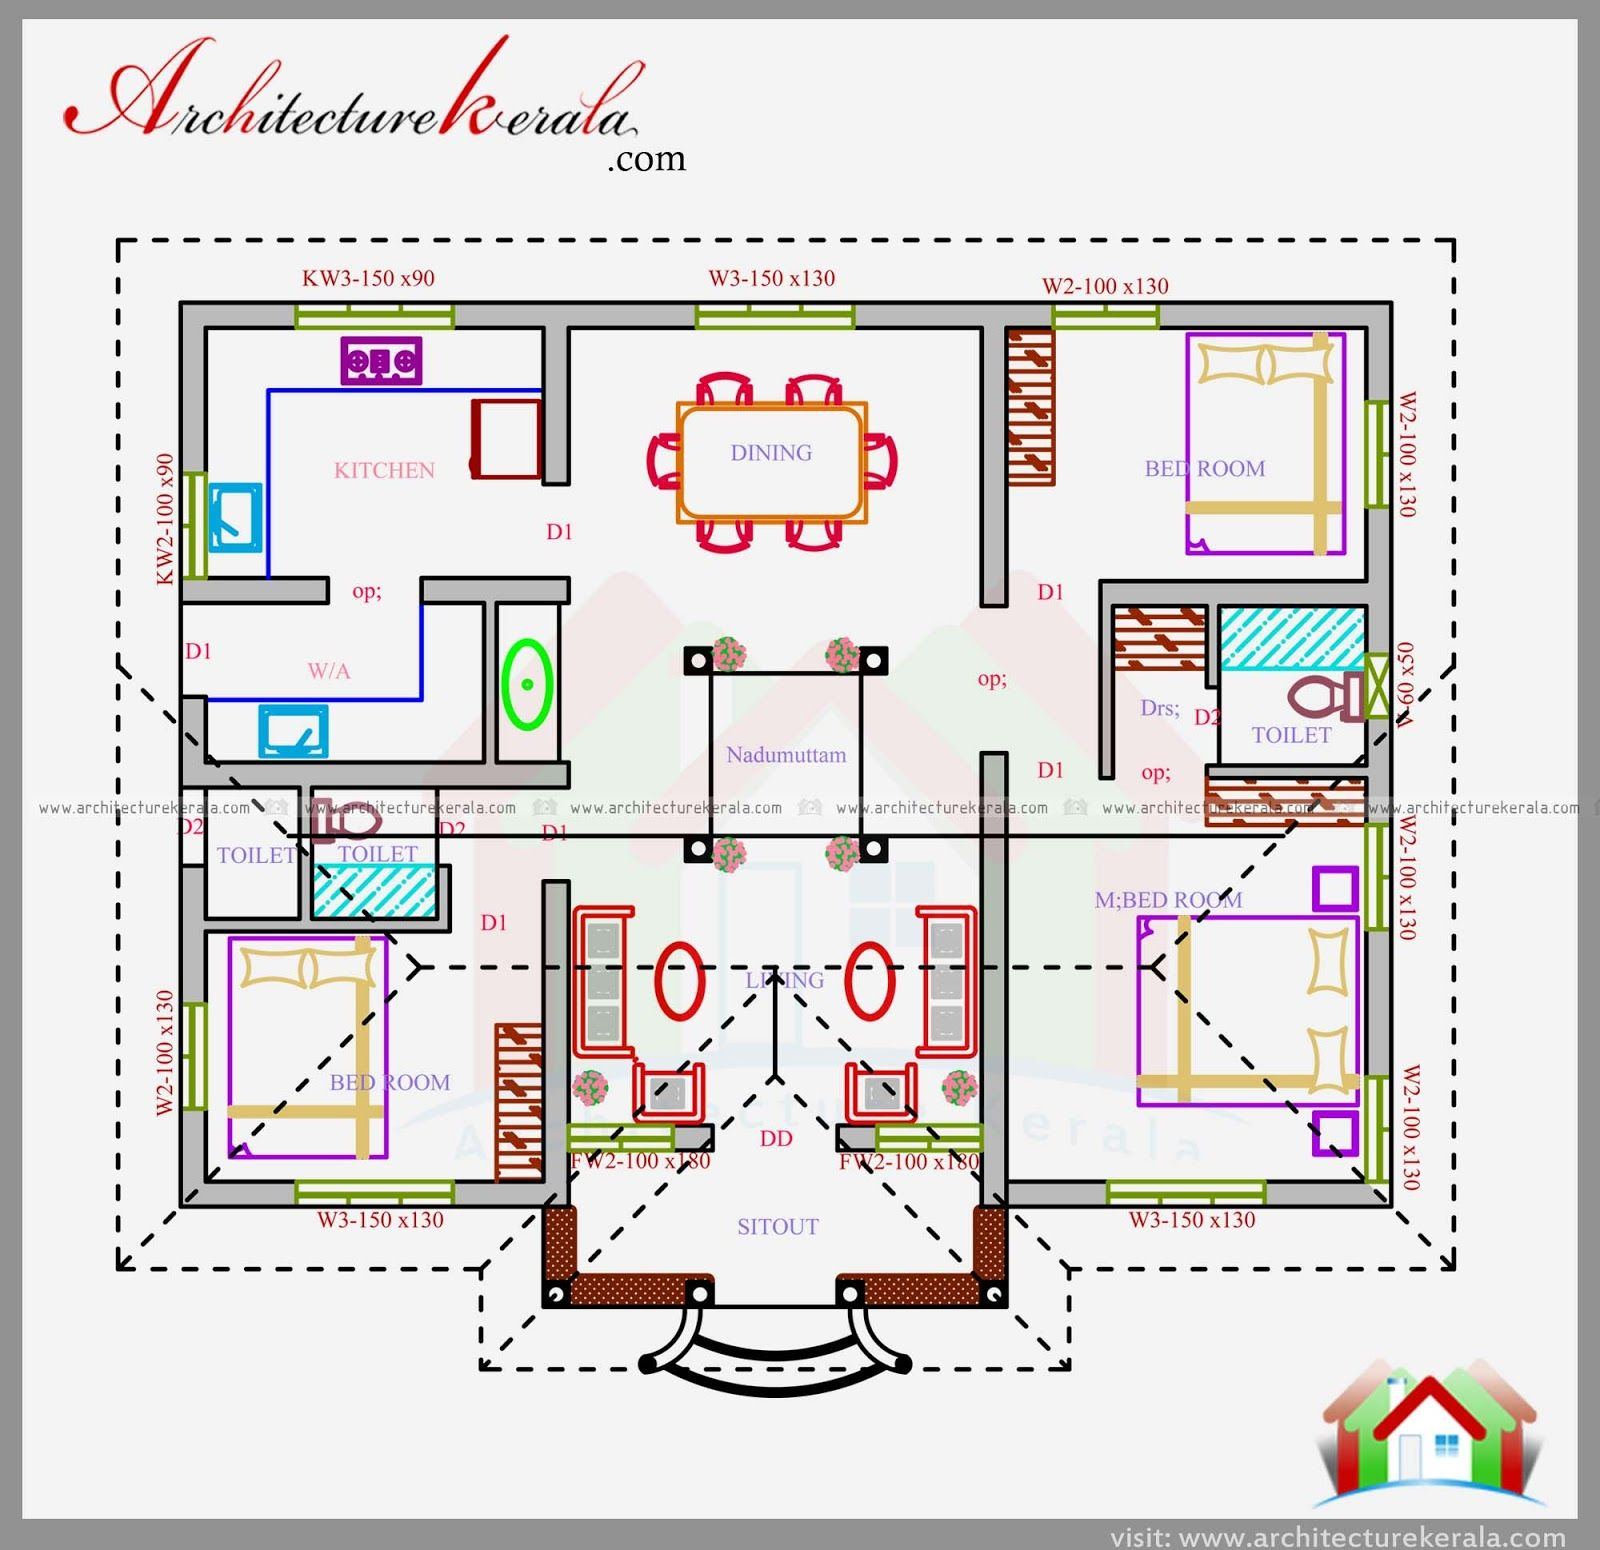 THREE BEDROOMS IN 1200 SQUARE FEET KERALA HOUSE PLAN house planning Pinterest